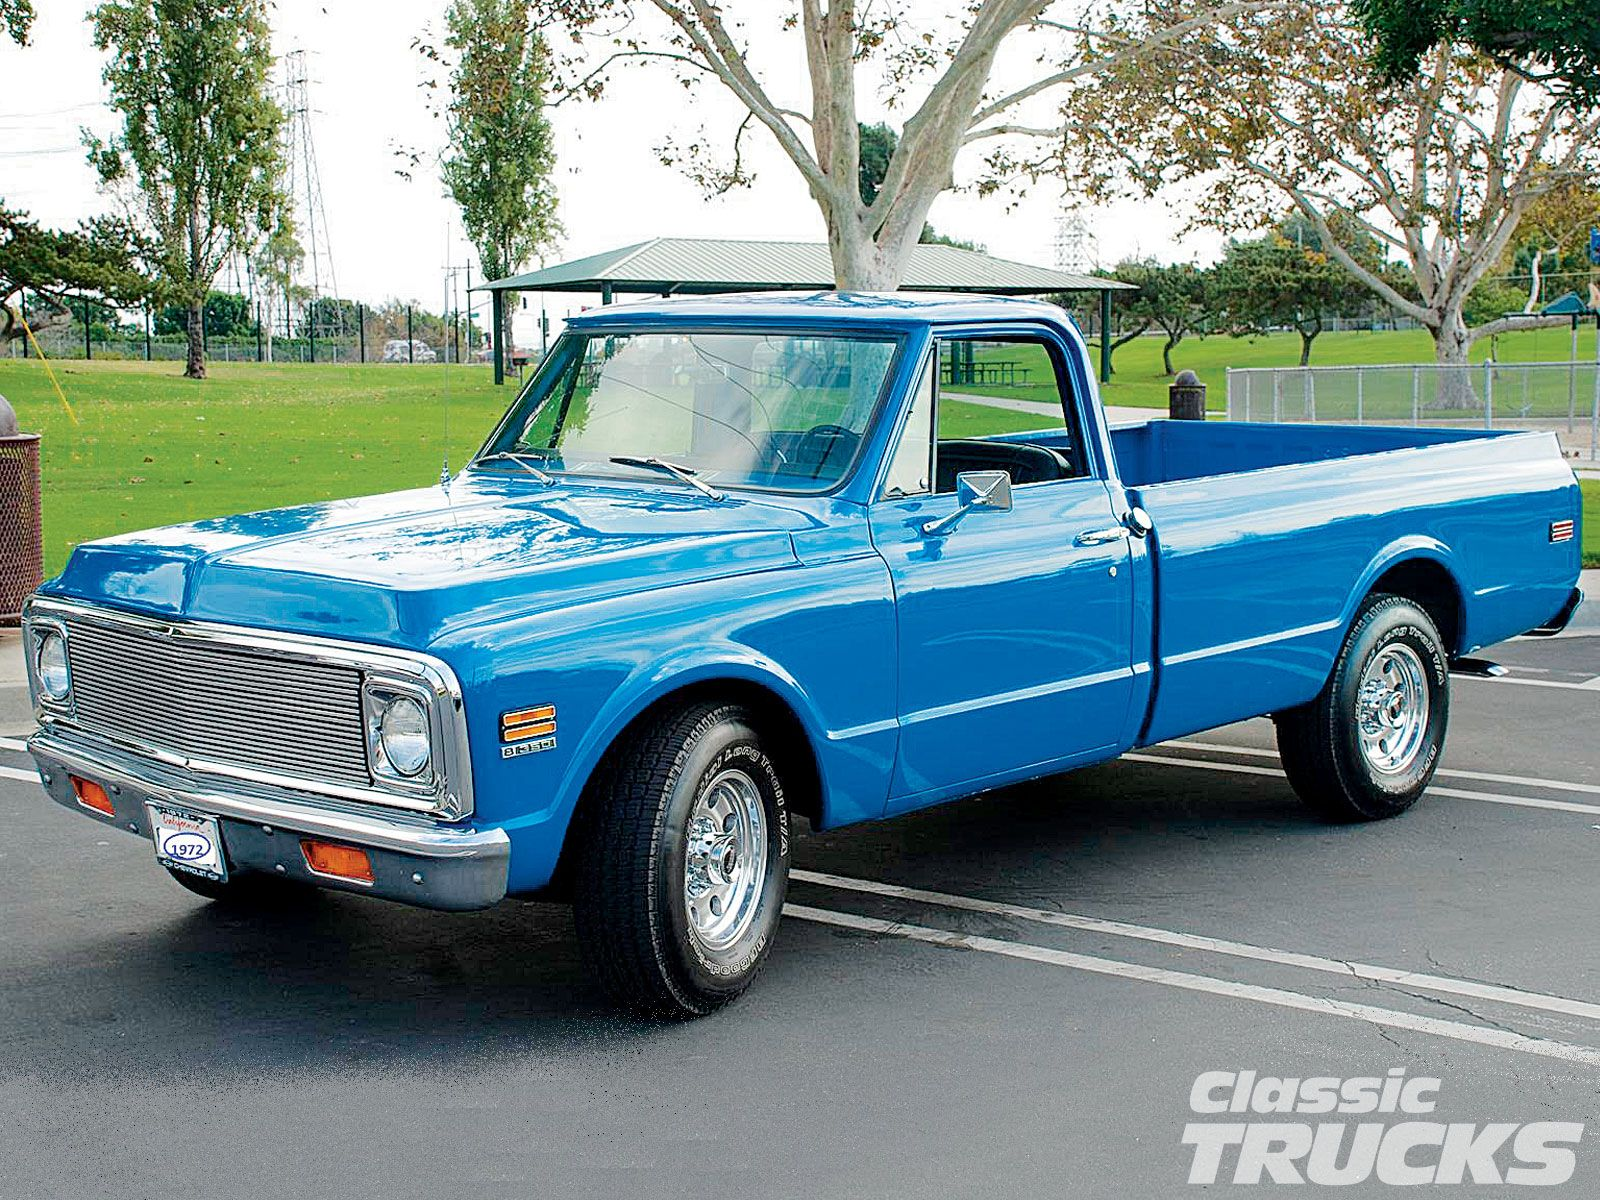 a 1971 chevy c20 in medium blue really nice  [ 1600 x 1200 Pixel ]